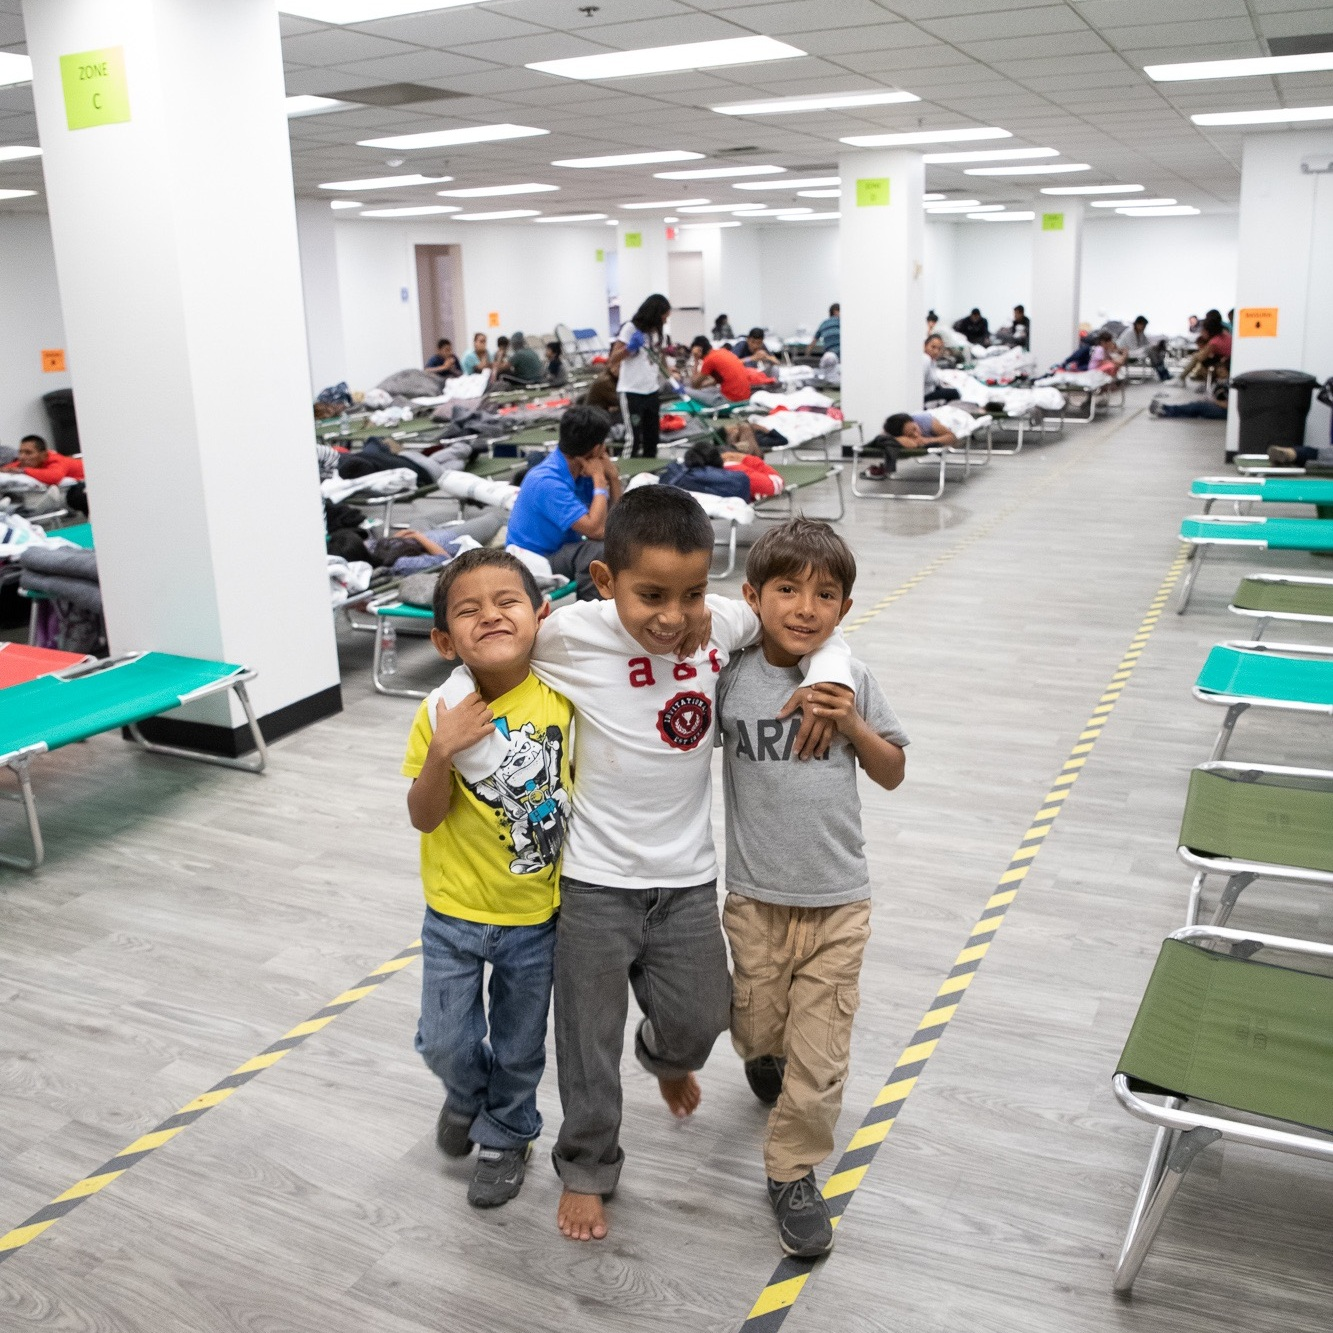 San Diego Rapid Response Network - Migrant shelter in downtown SD helping refugees crossing the Mexico border